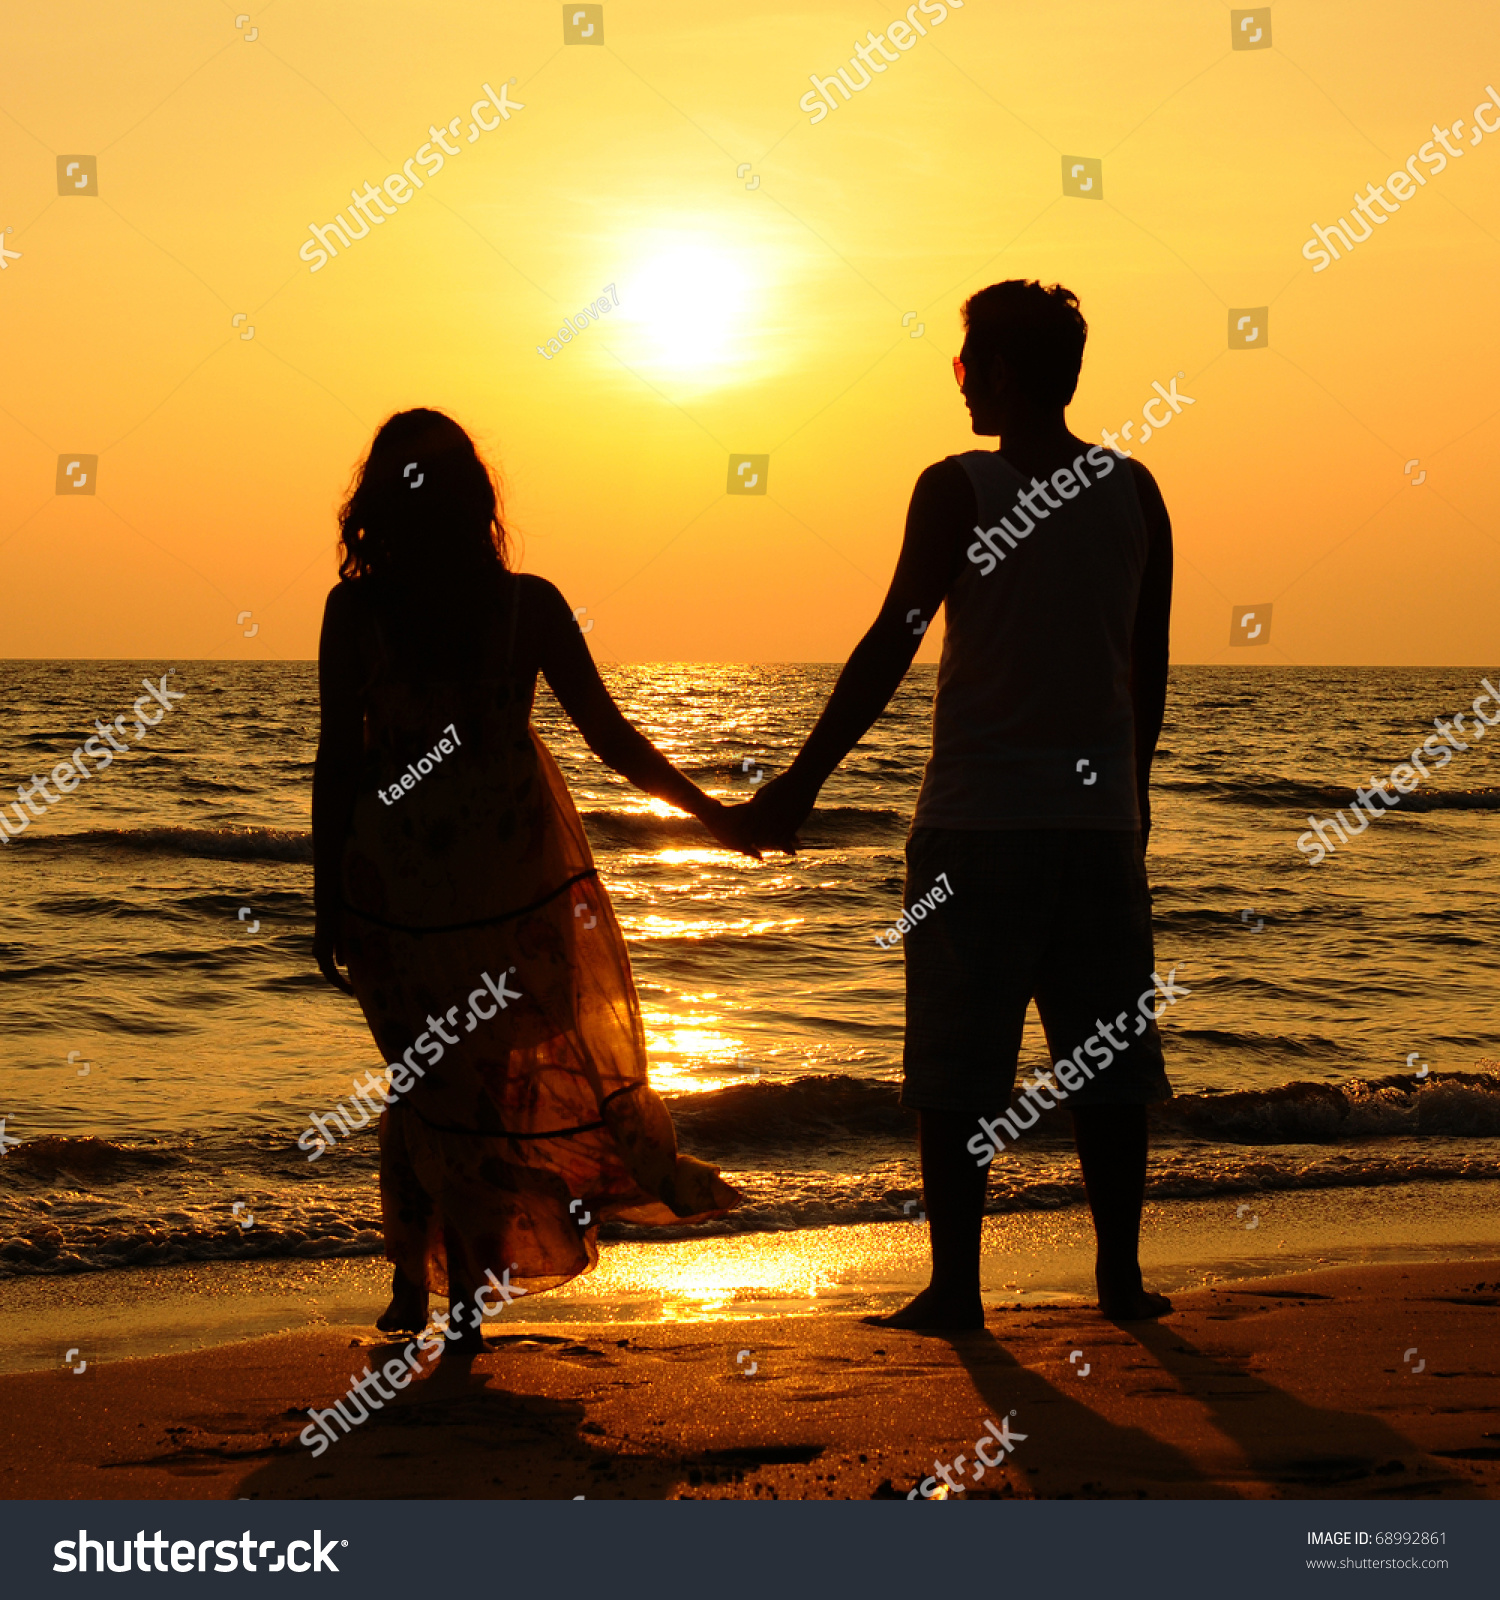 Couple Silhouette On Beach Sunset Stock Photo 68992861